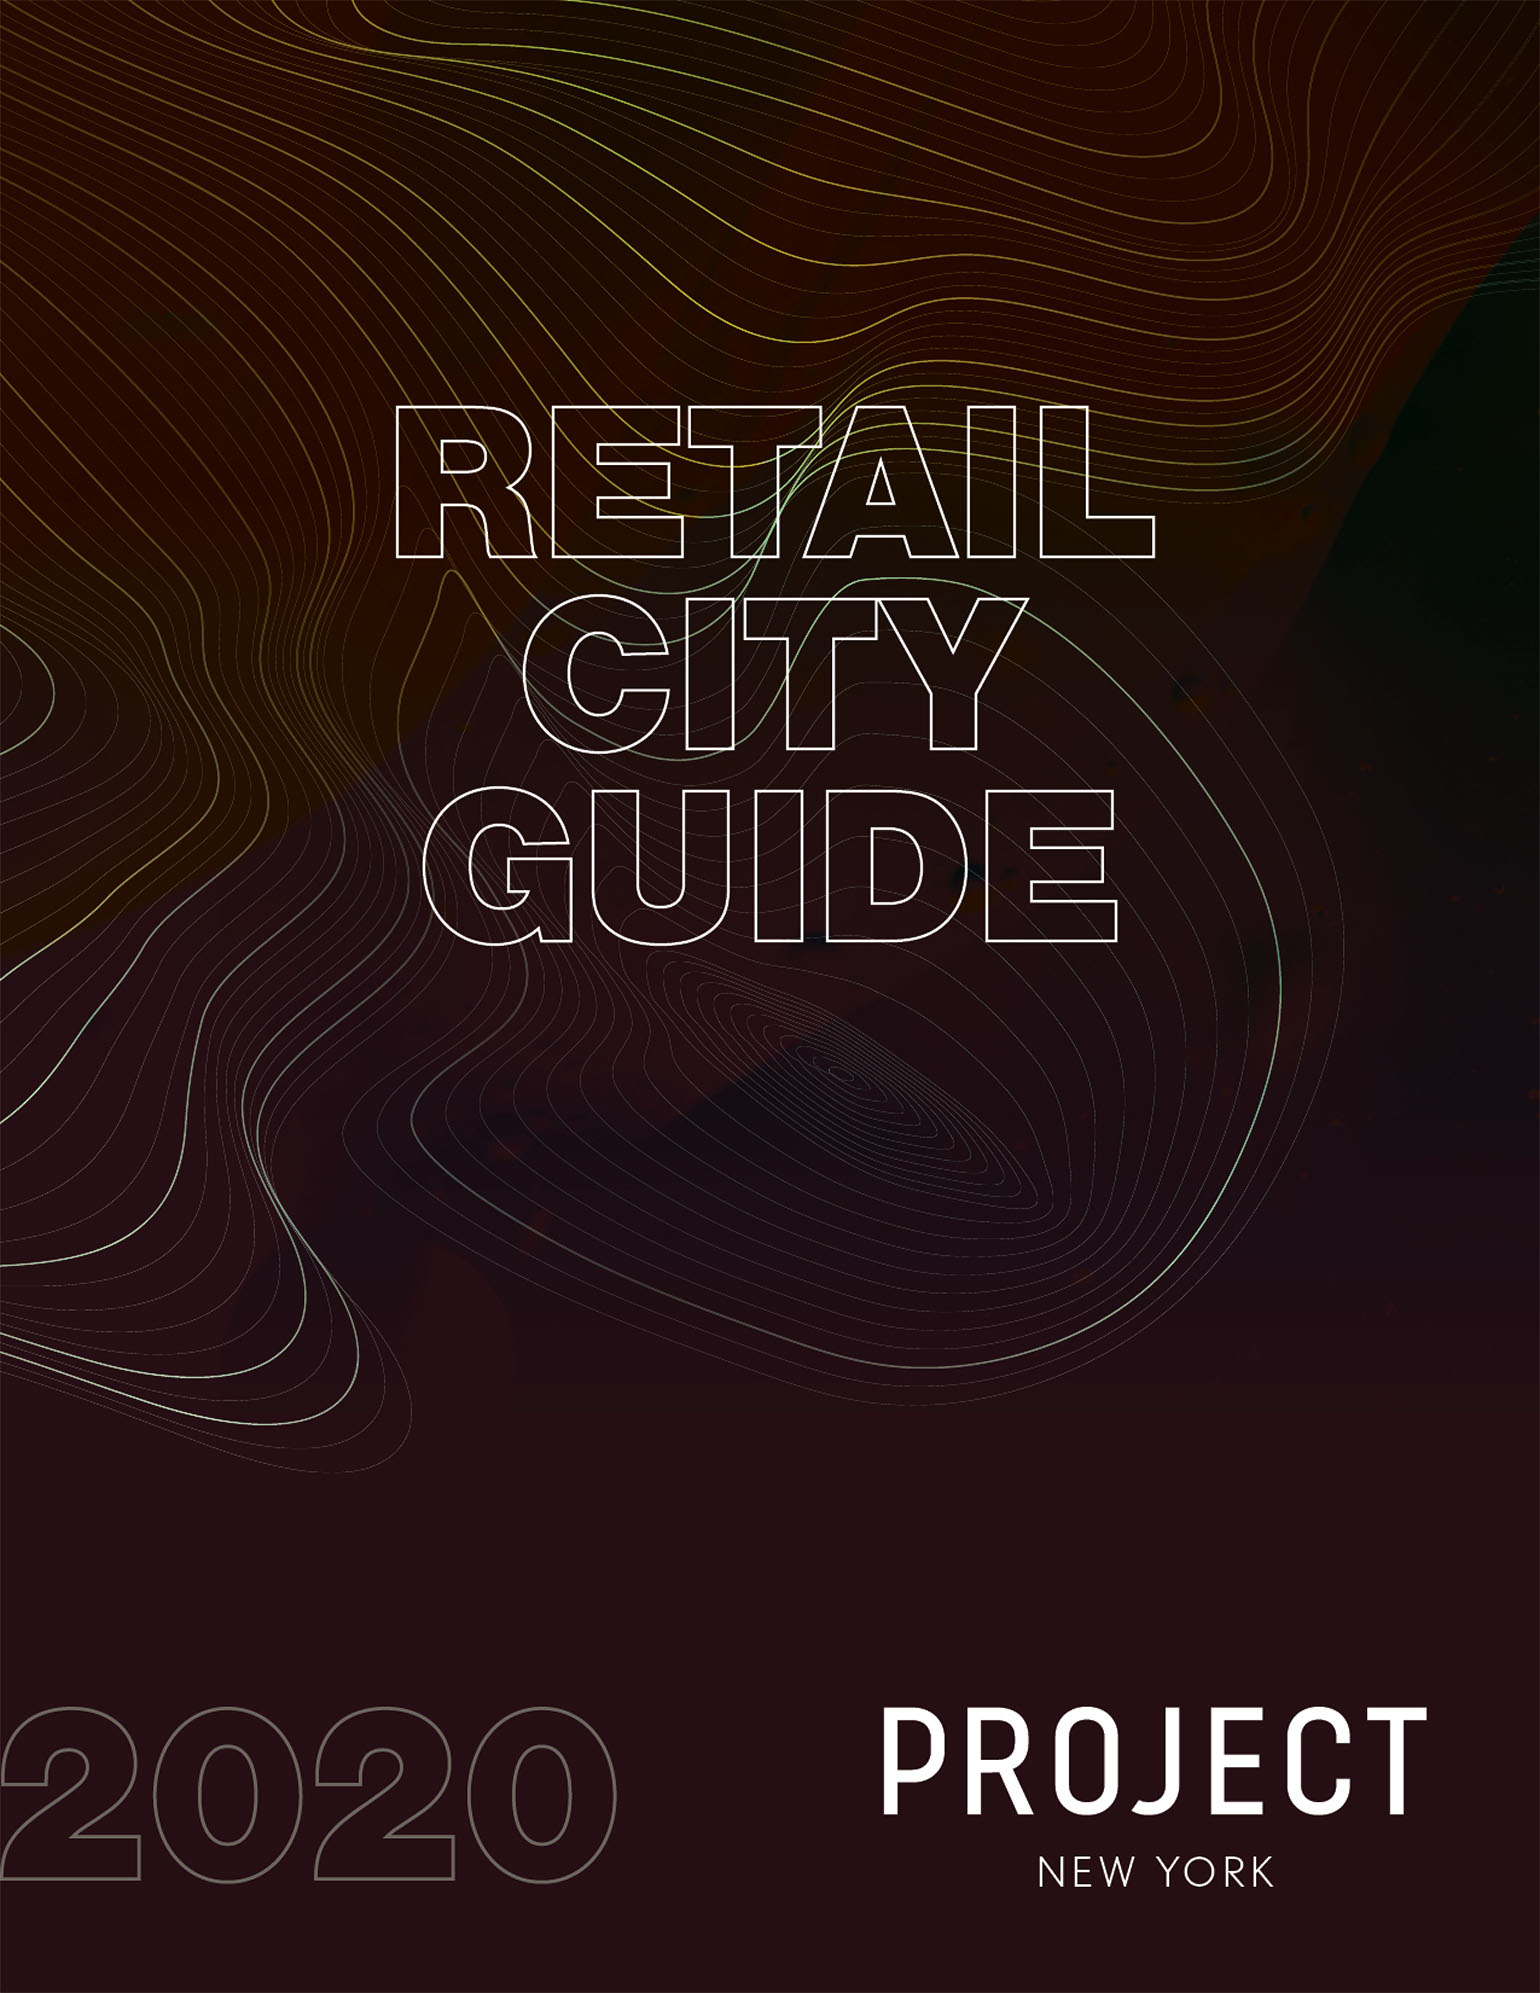 PROJECT_0120_retailguide_8.5x11_updated-1.jpg